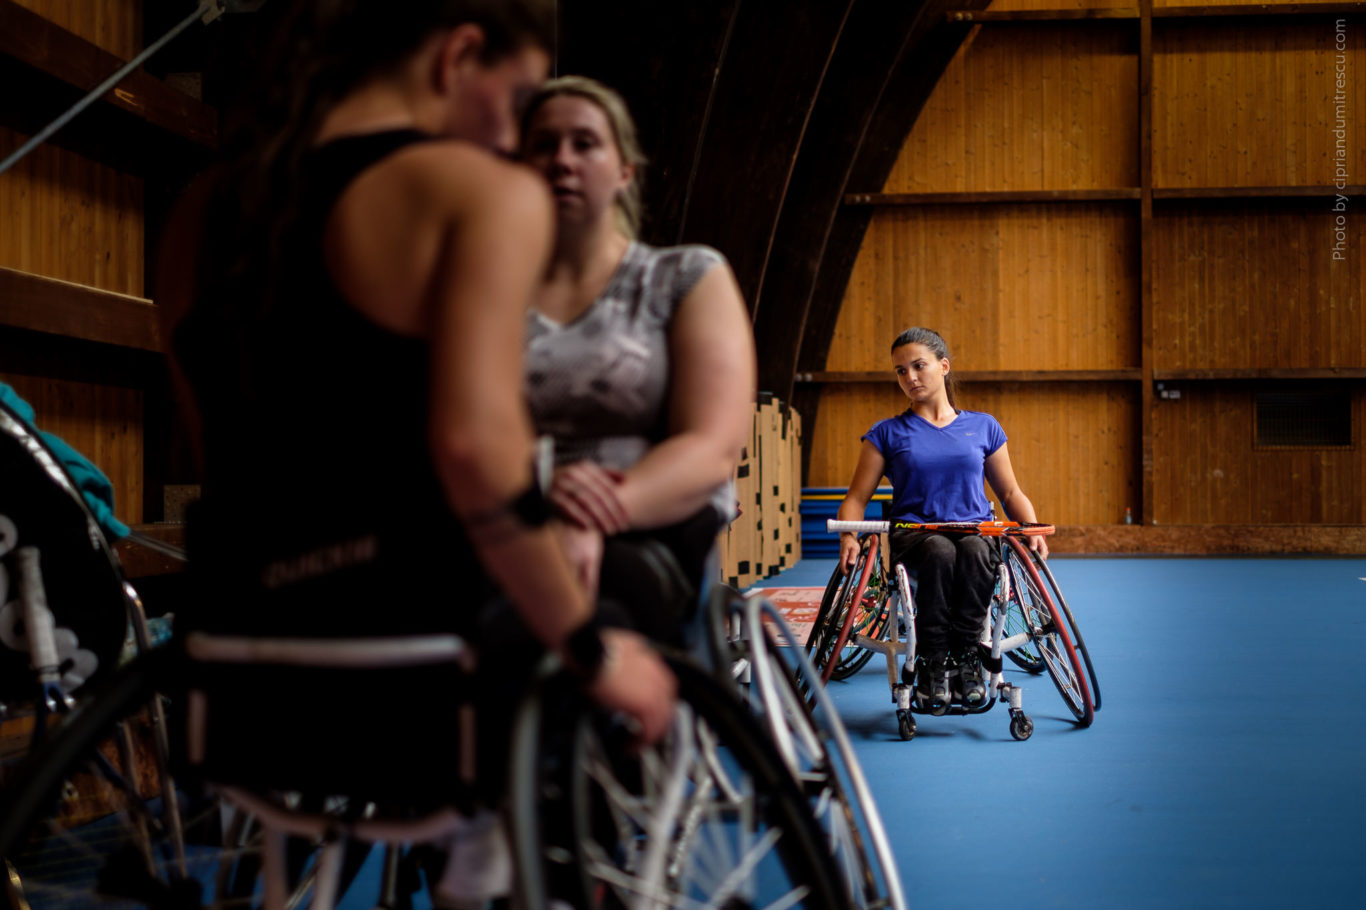 023-Bucharest-Open-Wheelchair-2016-Day-One-Photographer-Ciprian-Dumitrescu